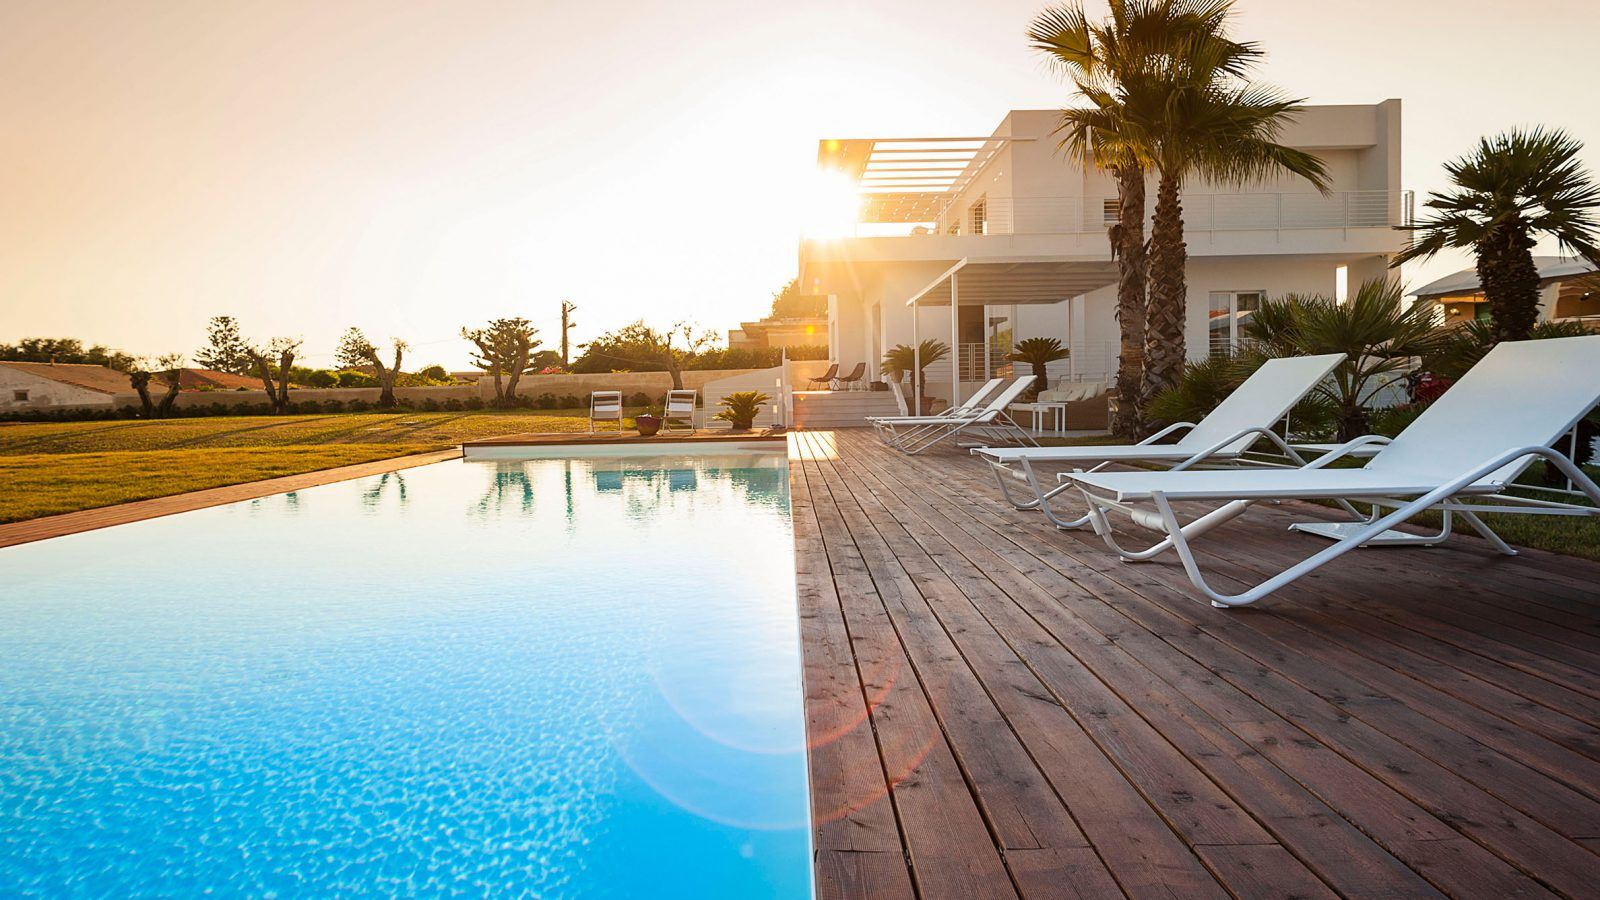 Villa for rent in Sicily, for 10 people, with private ...